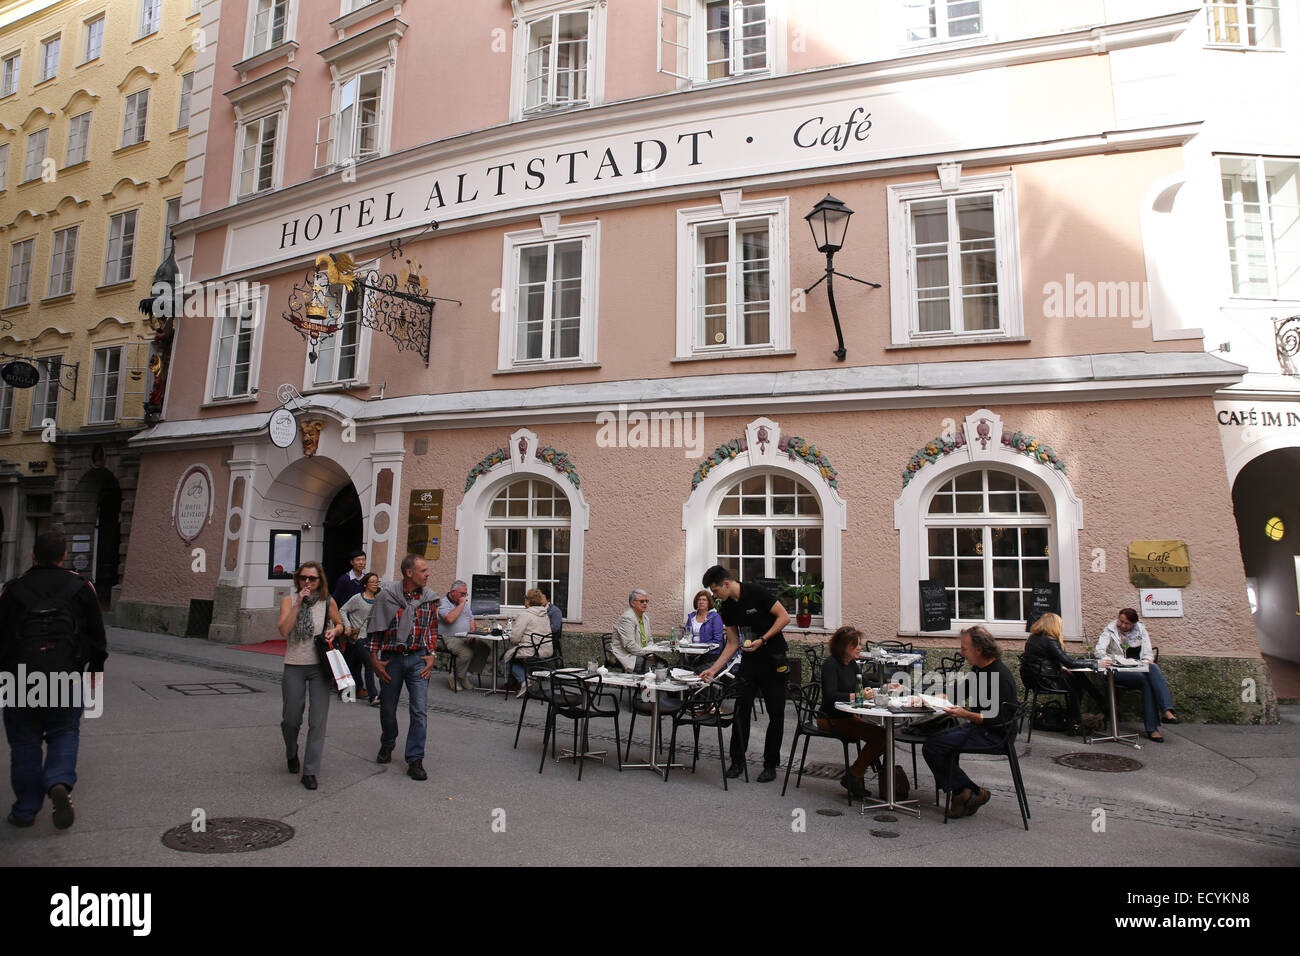 hotel altstadt cafe salzburg stock photo royalty free image 76825540 alamy. Black Bedroom Furniture Sets. Home Design Ideas